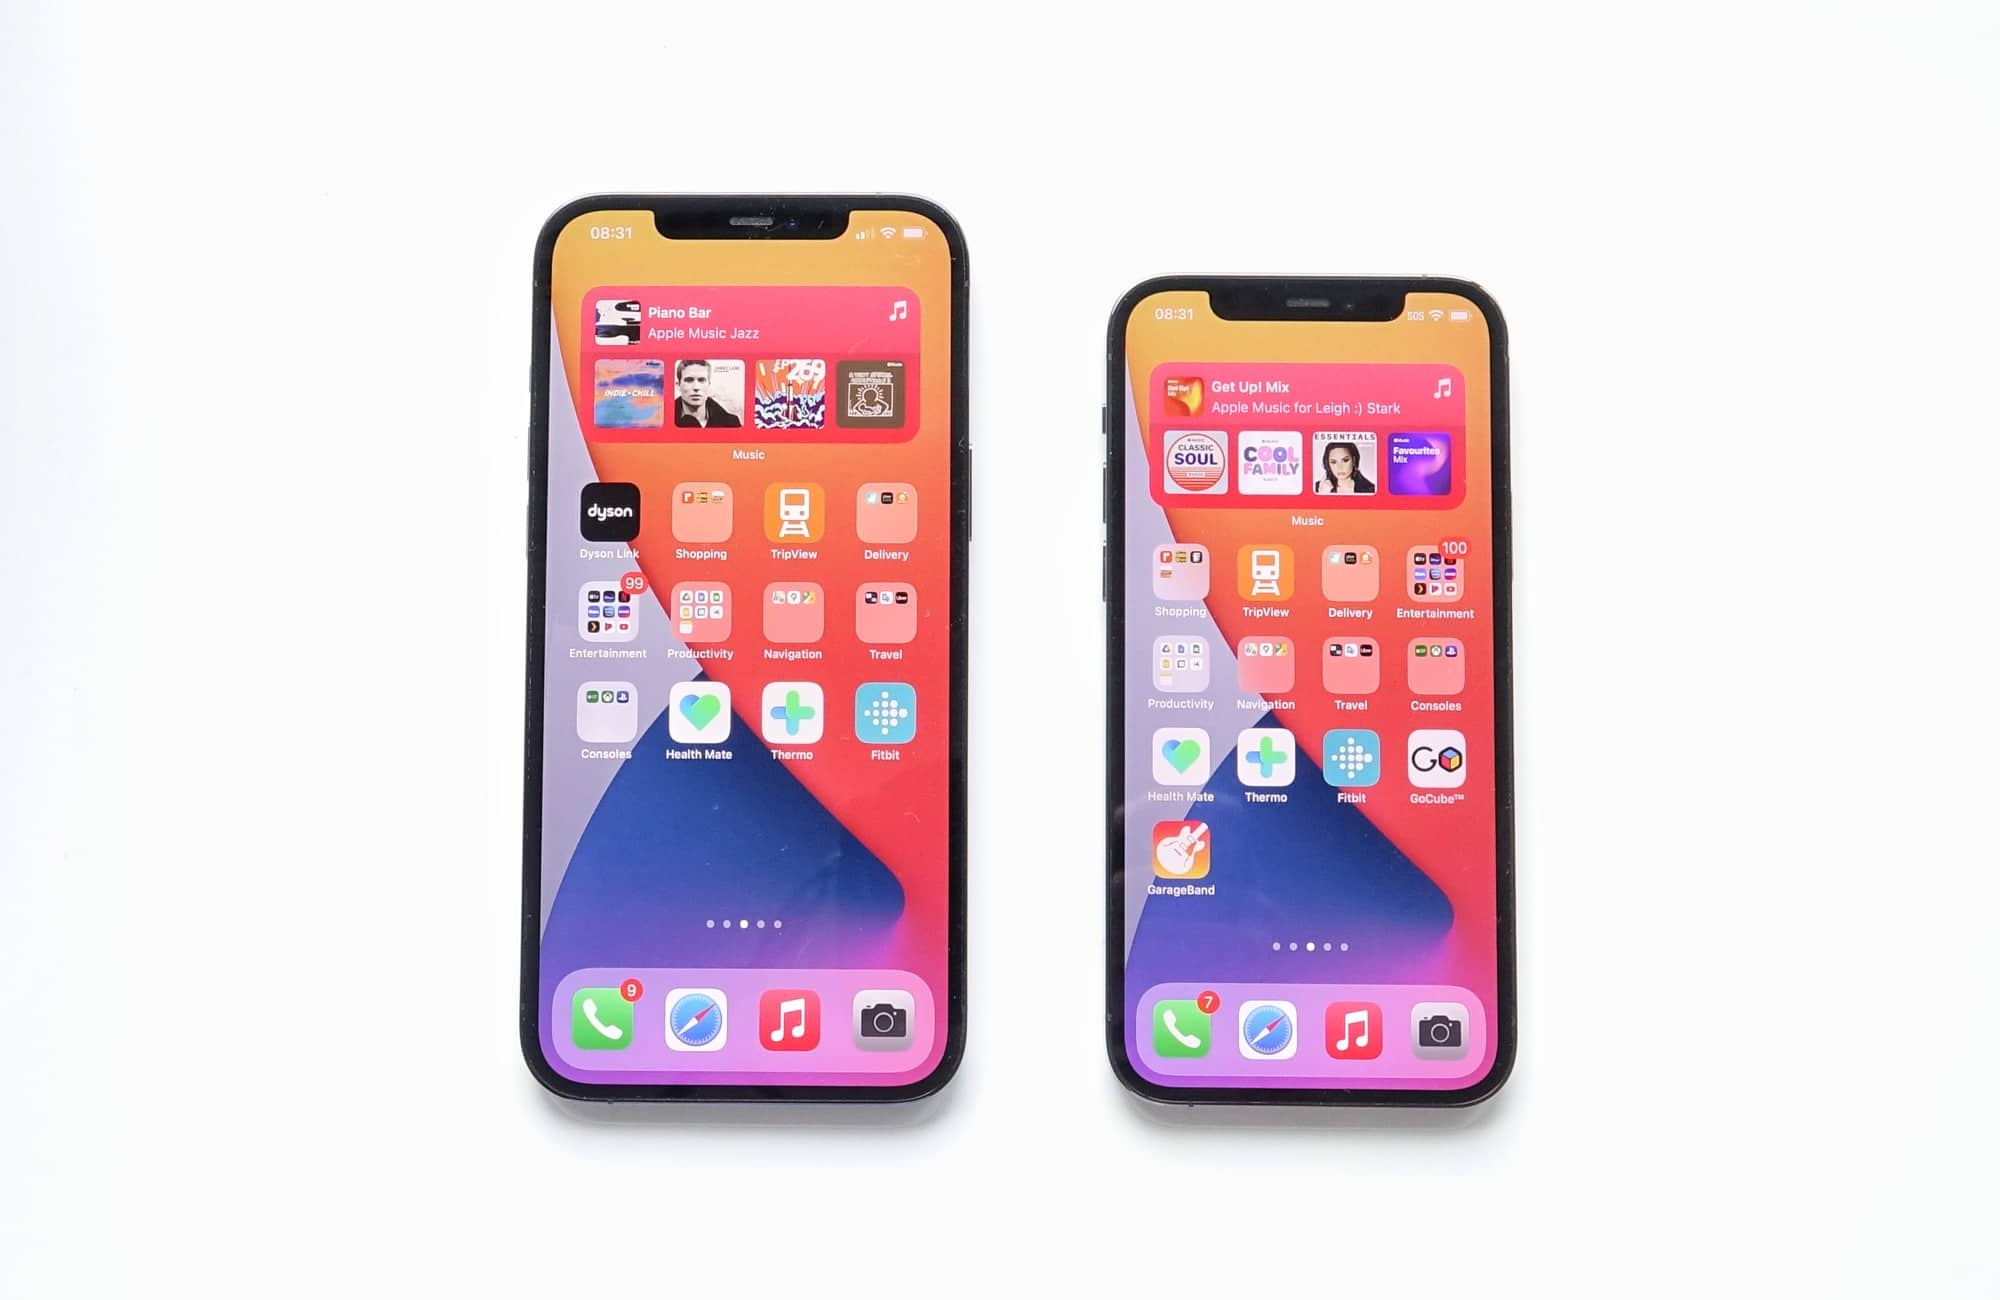 The difference in size between the iPhone 12 Pro Max (left) and the iPhone 12 Pro (right)